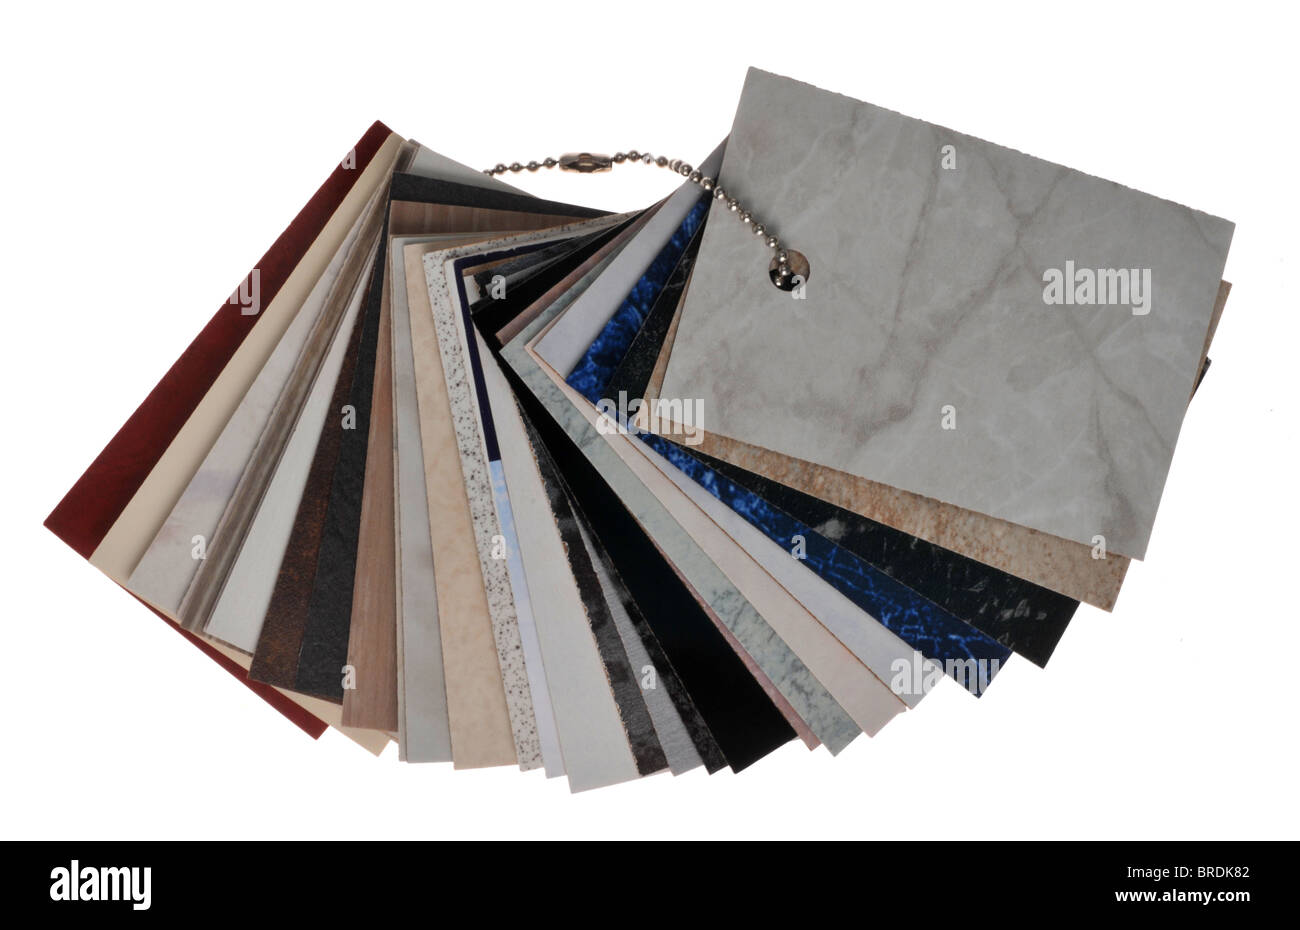 Tile samples - Stock Image